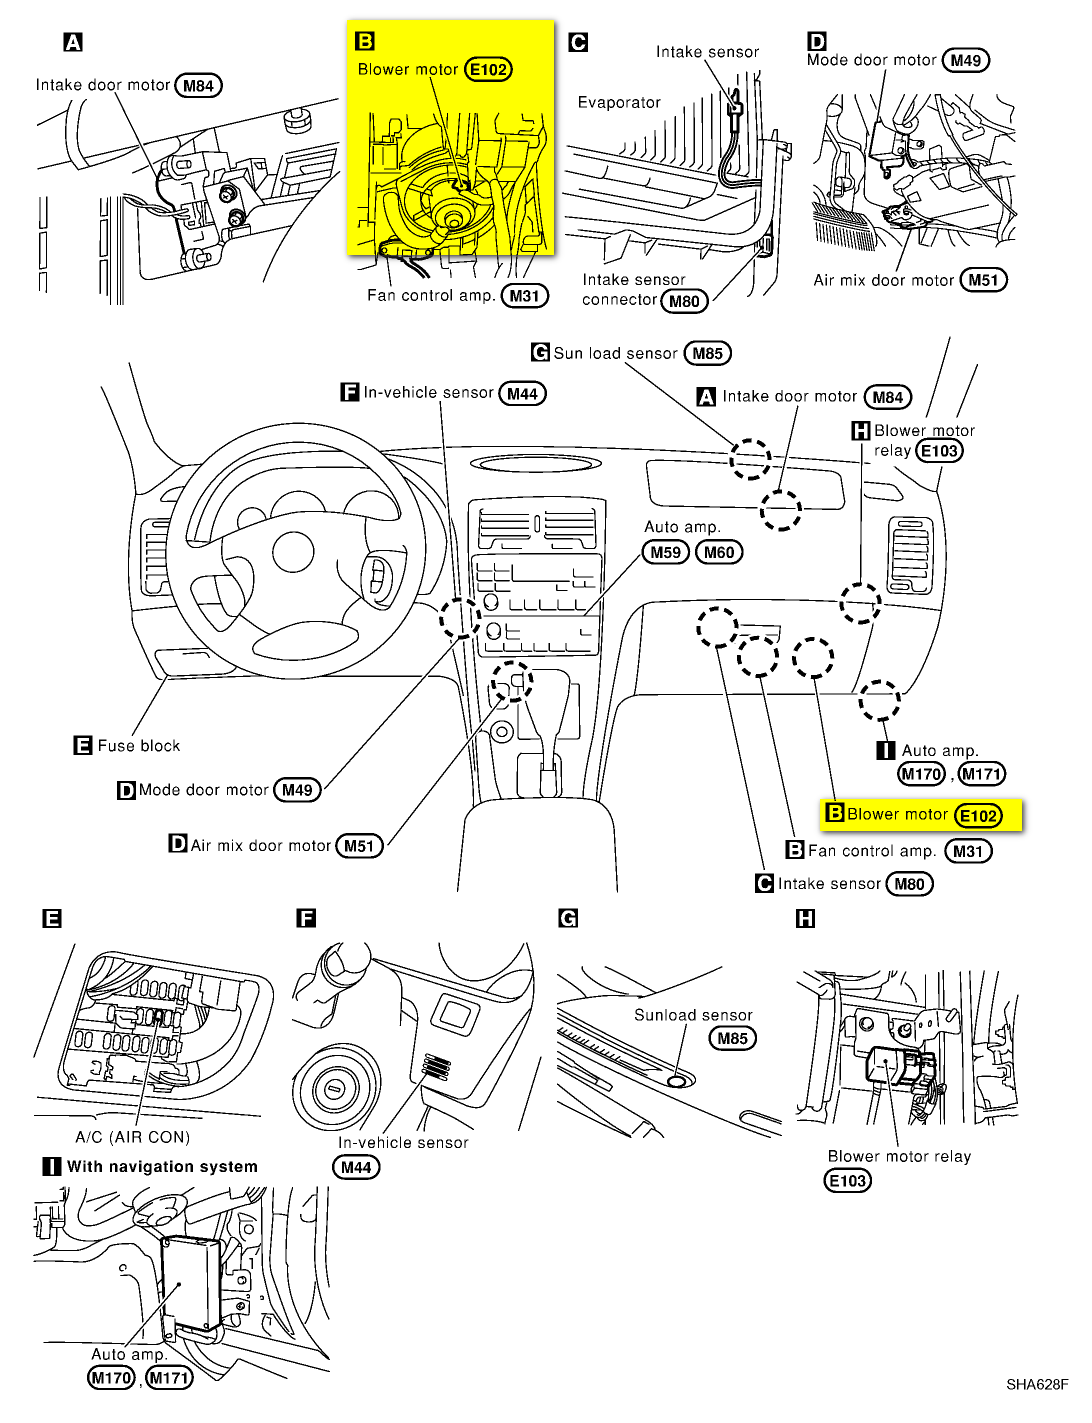 VW Jetta Wiring Diagram further Car Air Conditioning And Heating System as well 2001 Chevy Transmission Diagrams in addition 2002 Ford Focus ZX5 also Daewoo Lanos. on 2001 sentra blower motor resistor replacement